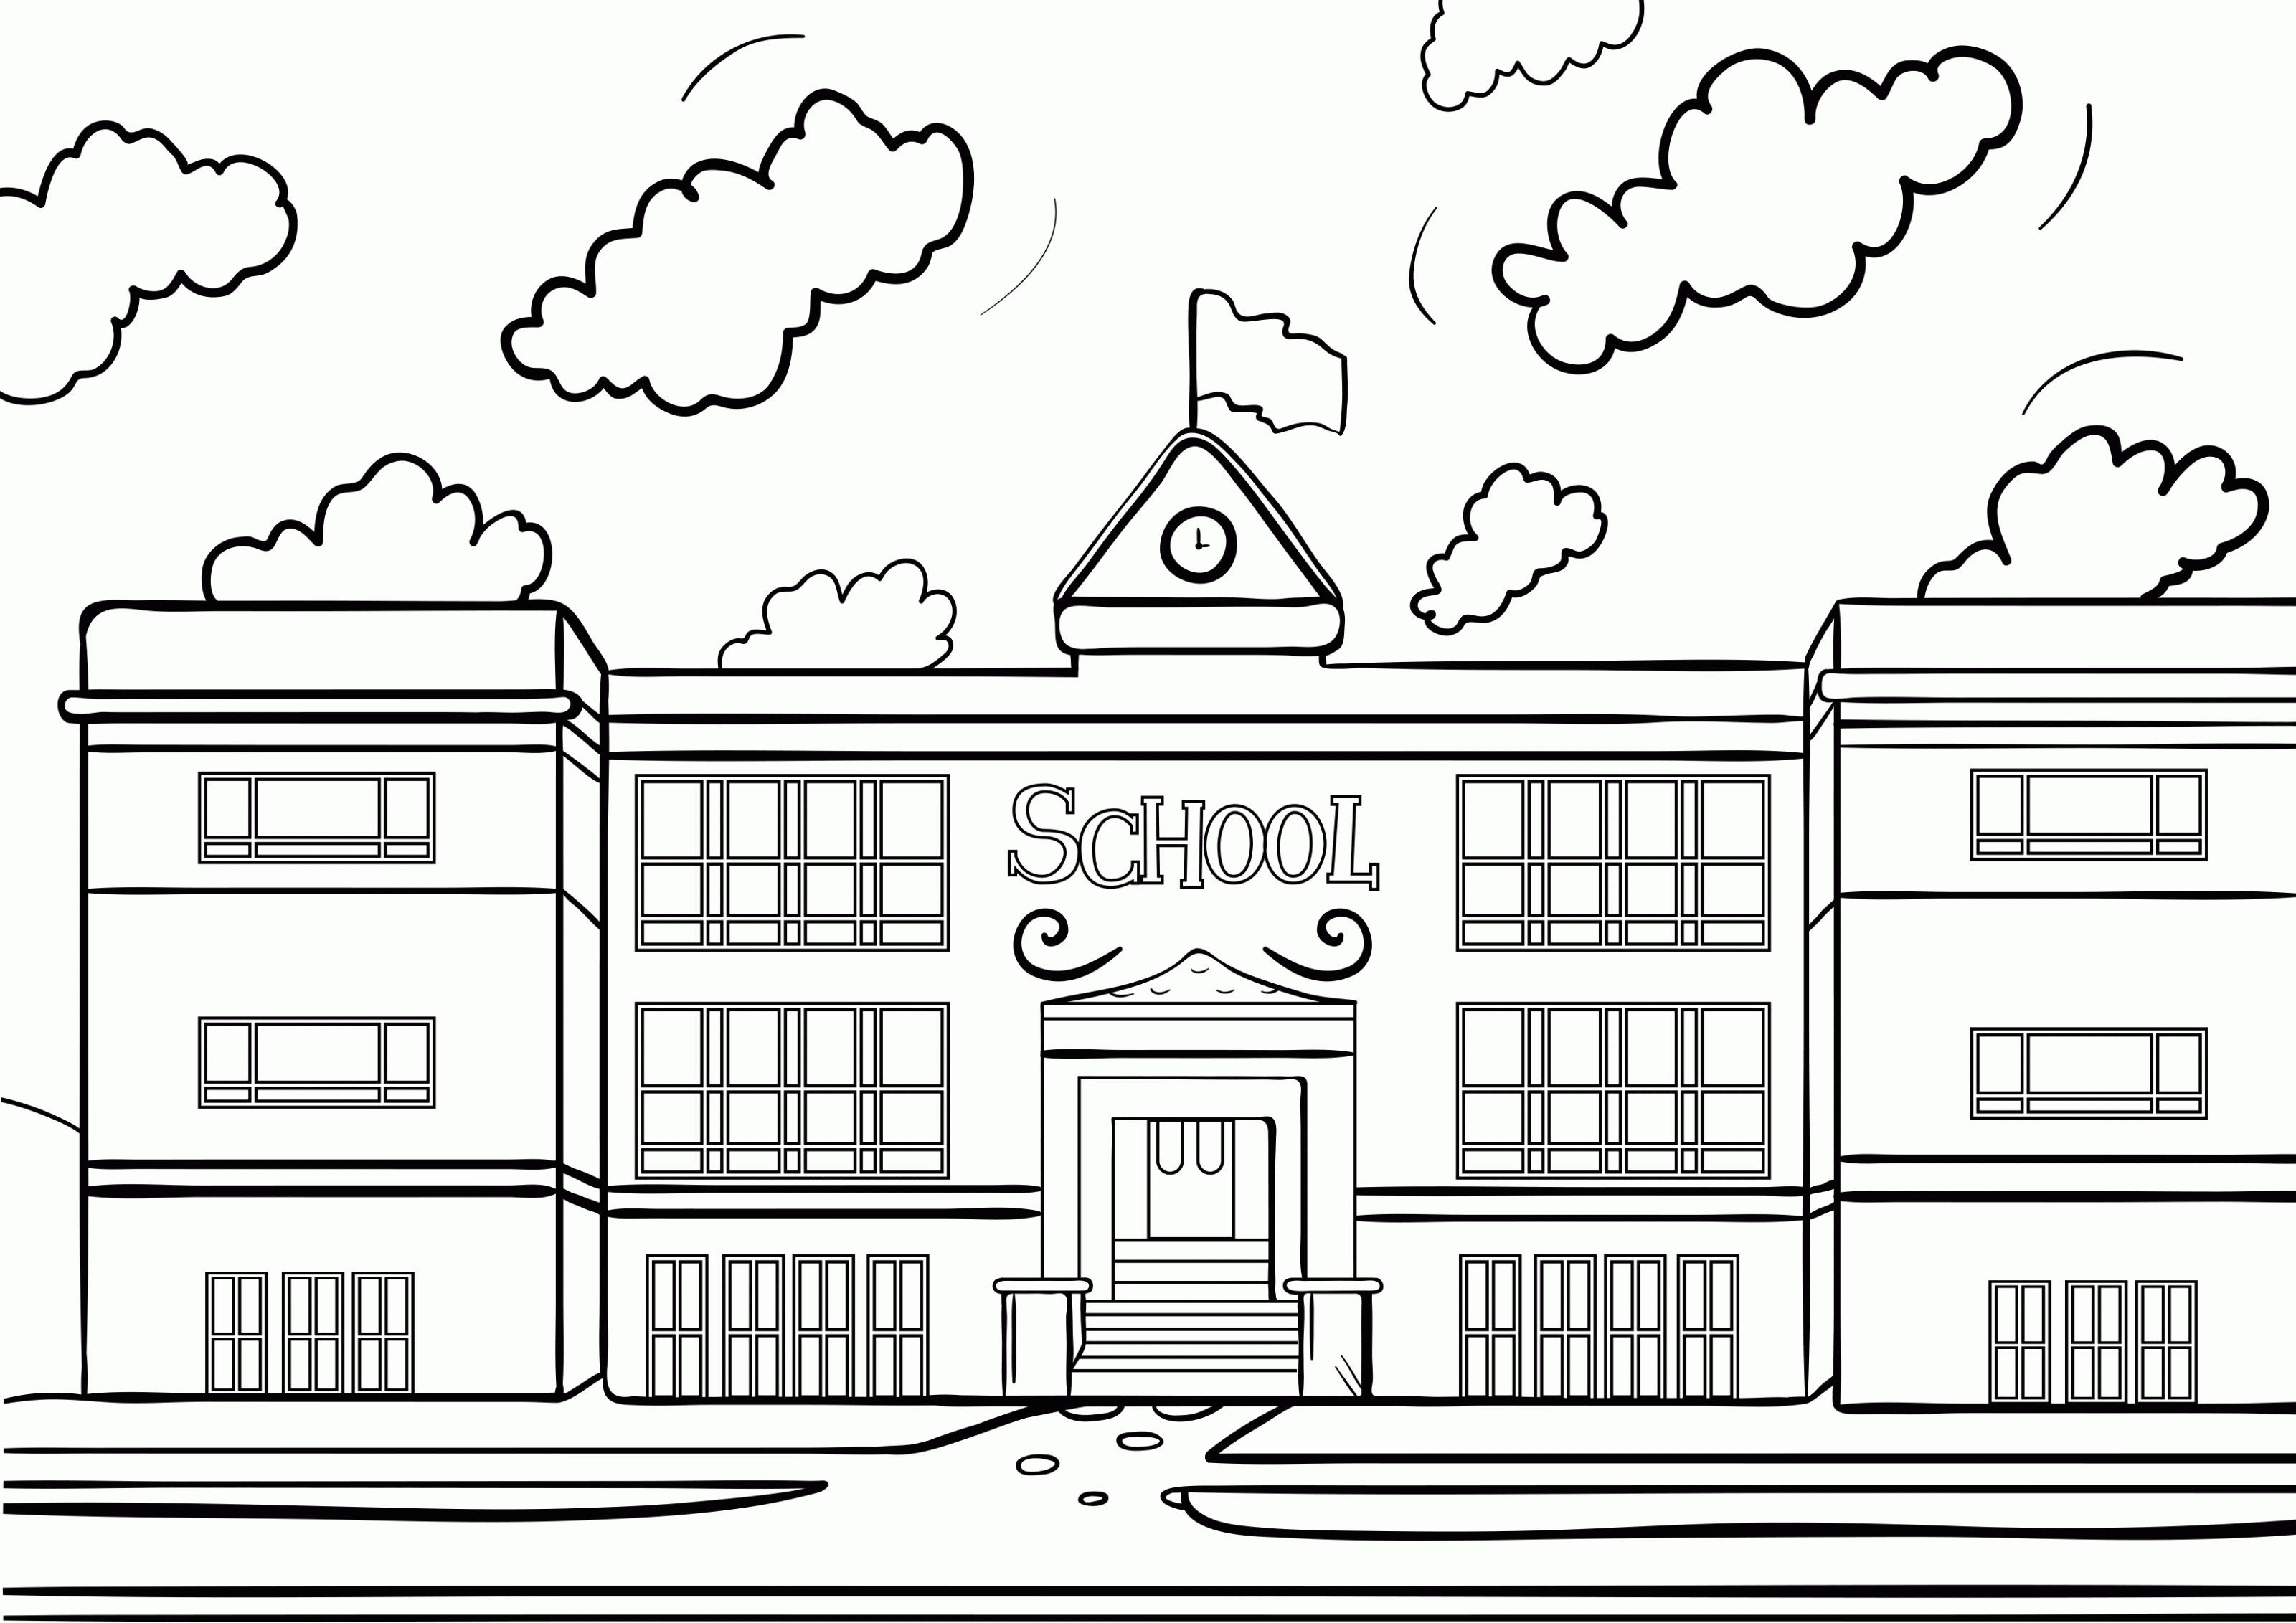 Coloring Pages A House School Coloring Pages Free Coloring Pages Coloring Pages